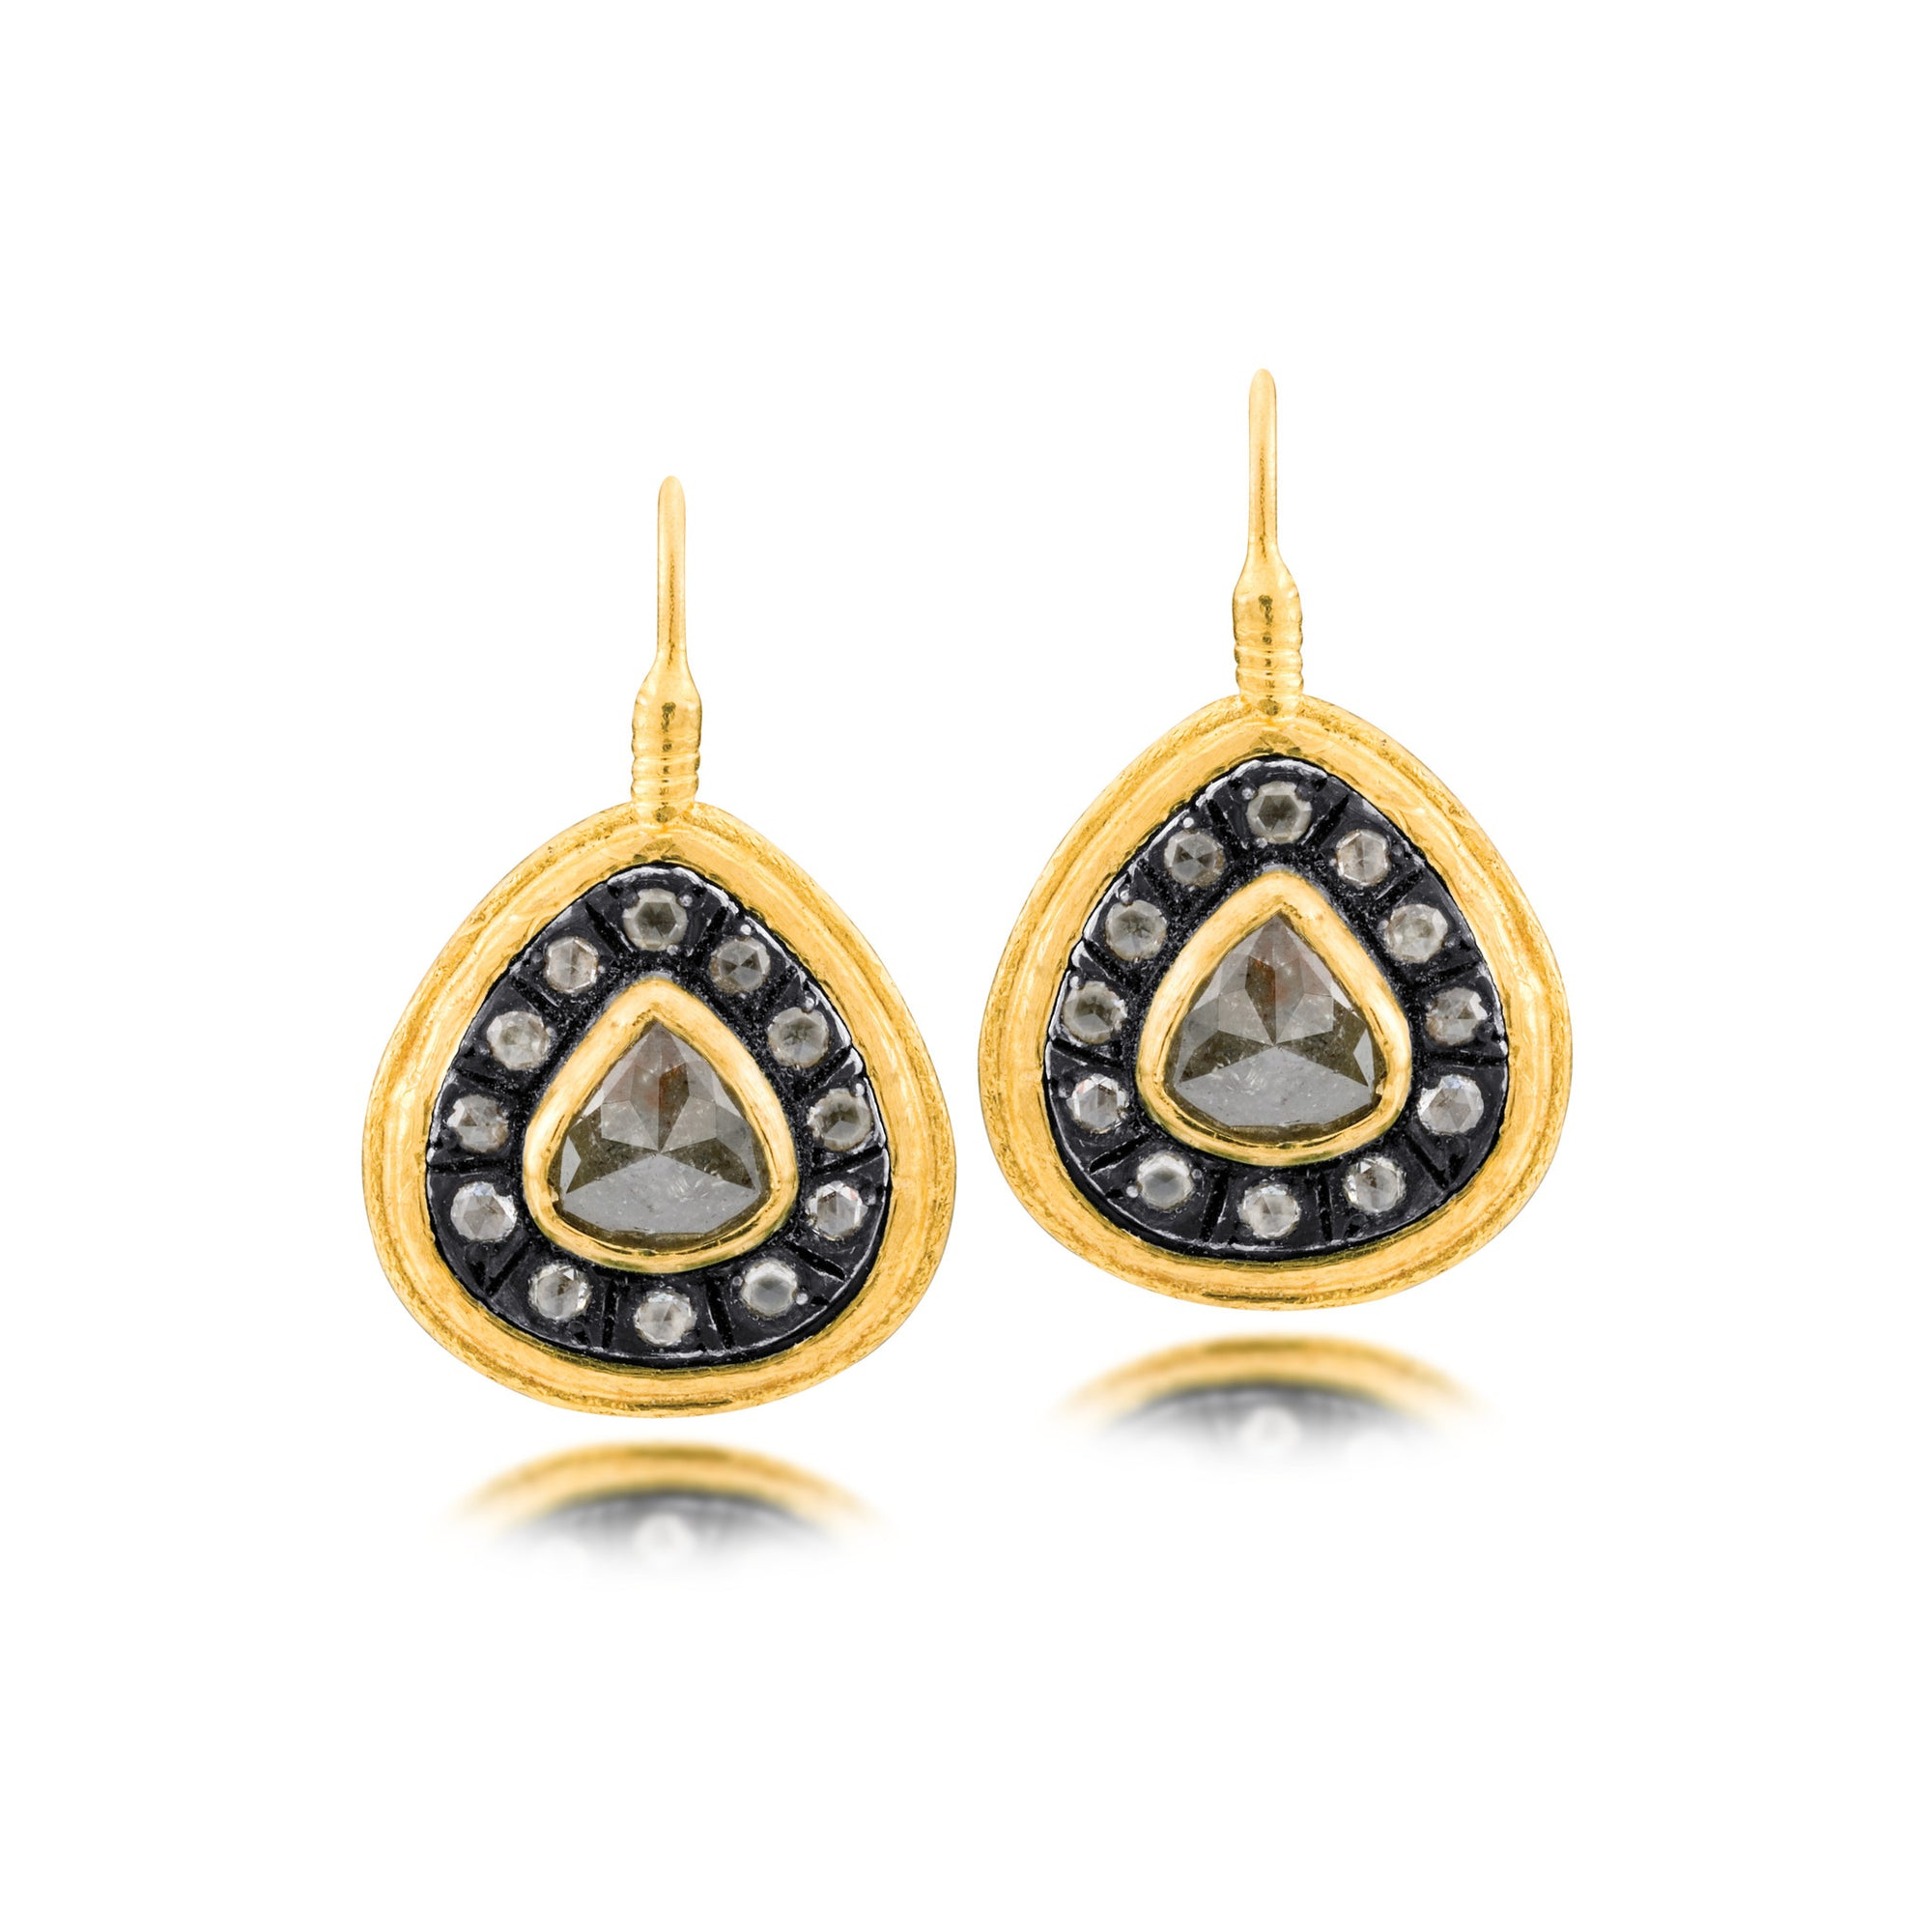 binenbaum image diamond gold earrings antiques product jewelry